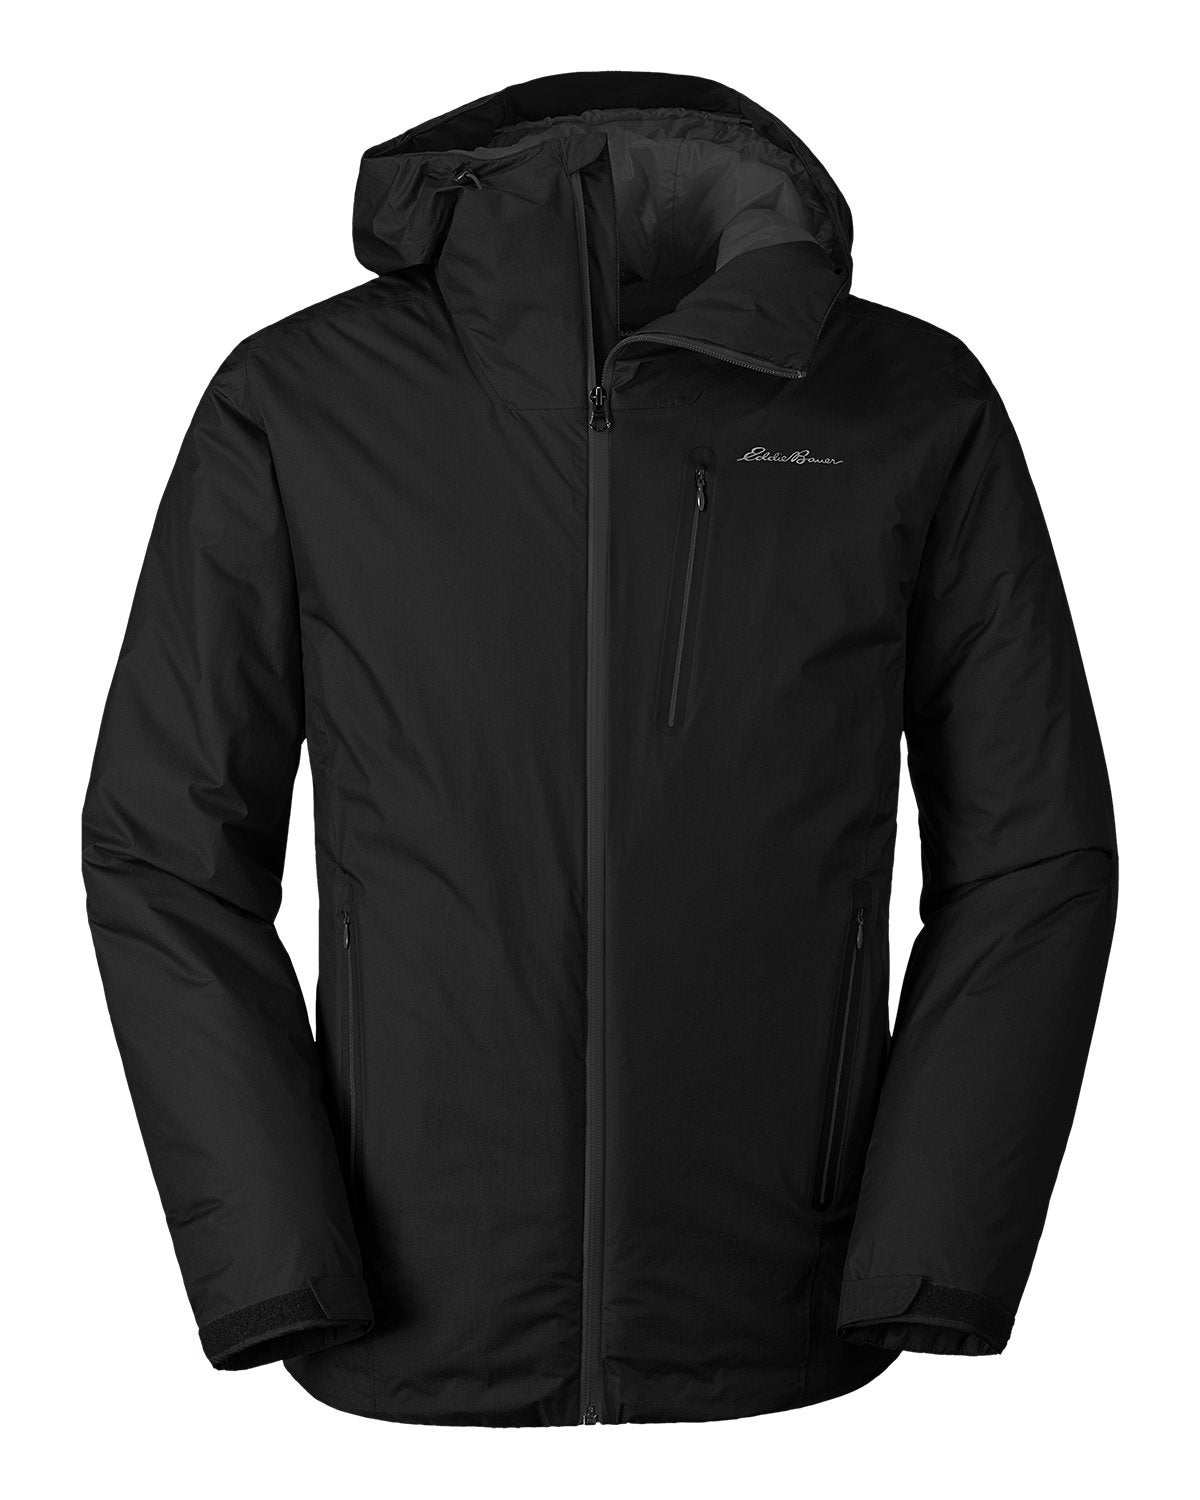 eddie bauer jacket in black